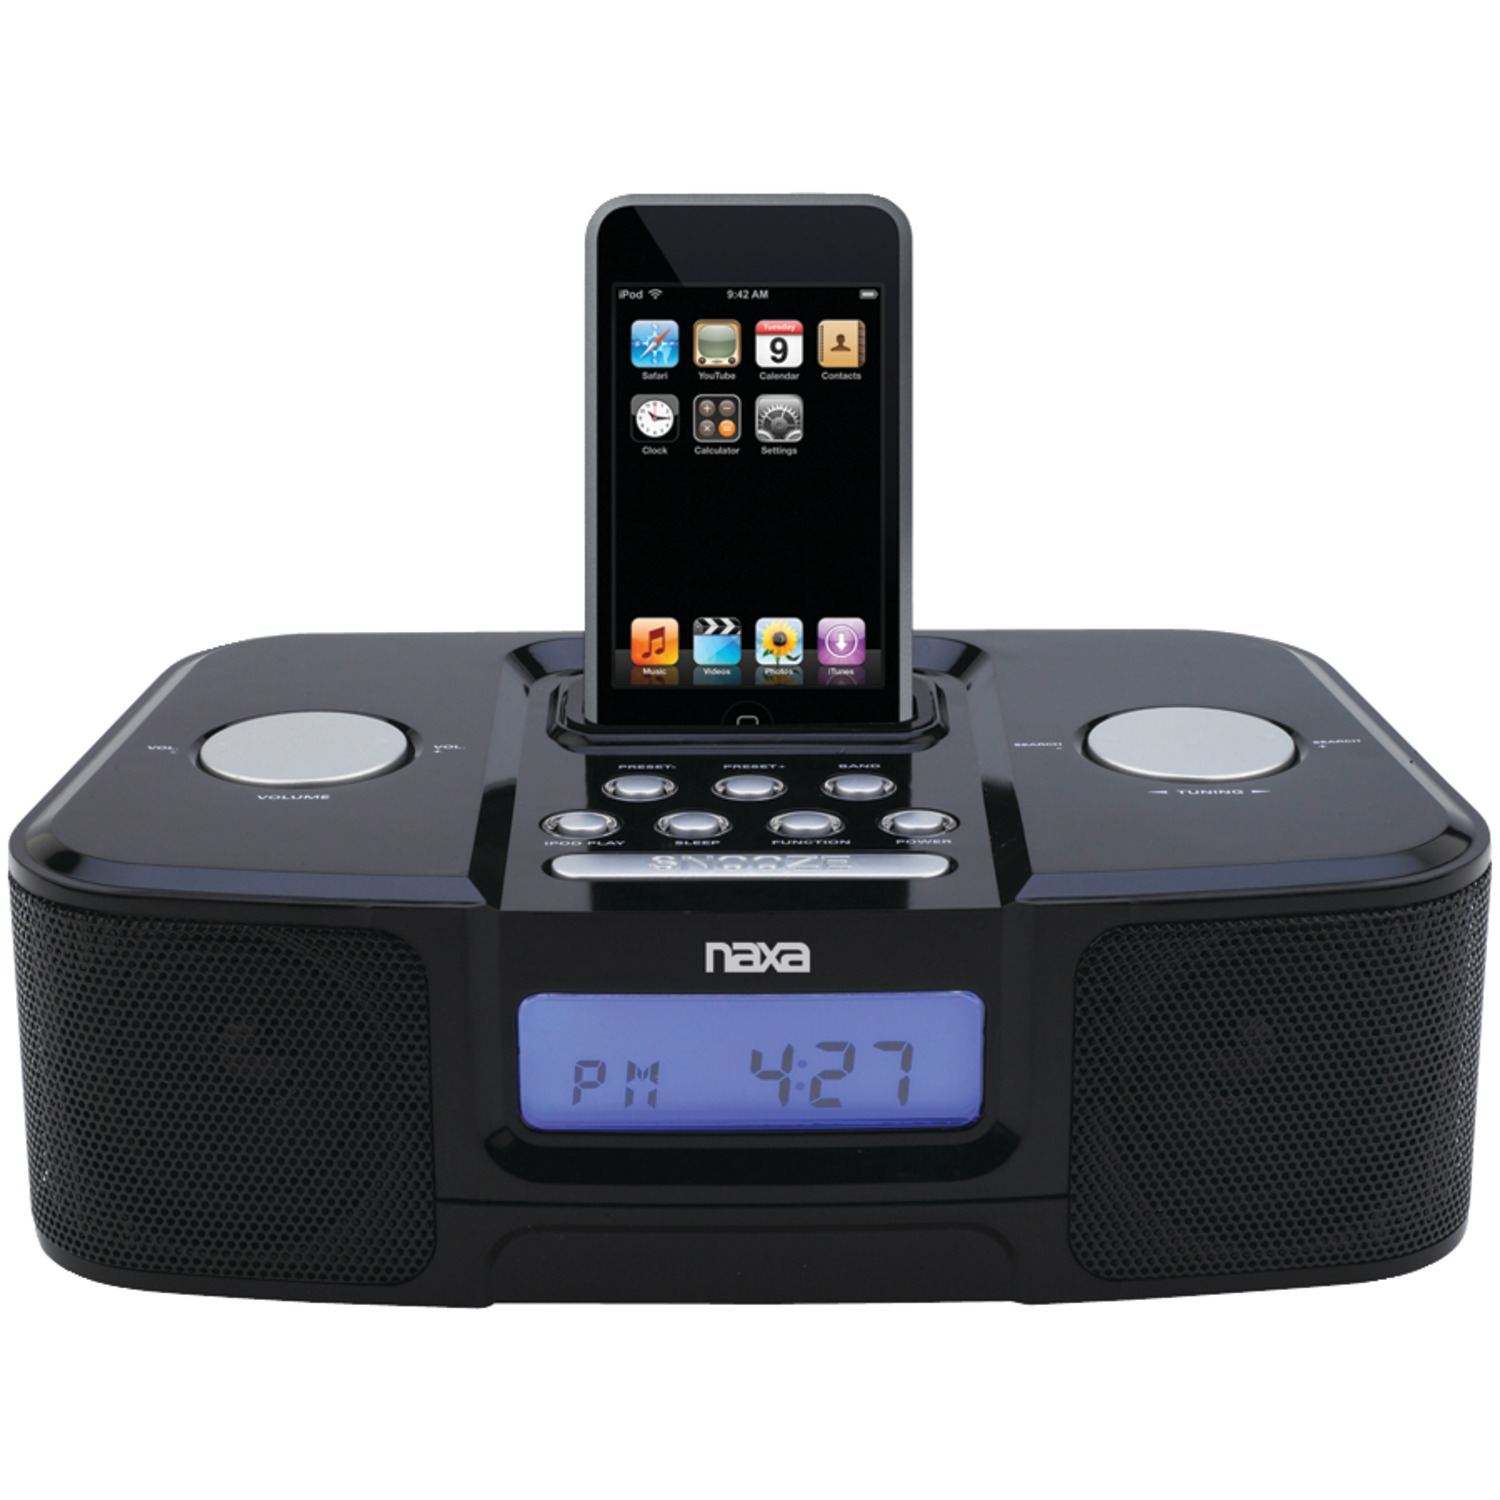 naxa ni3103a digital alarm clock radio with iphone r. Black Bedroom Furniture Sets. Home Design Ideas